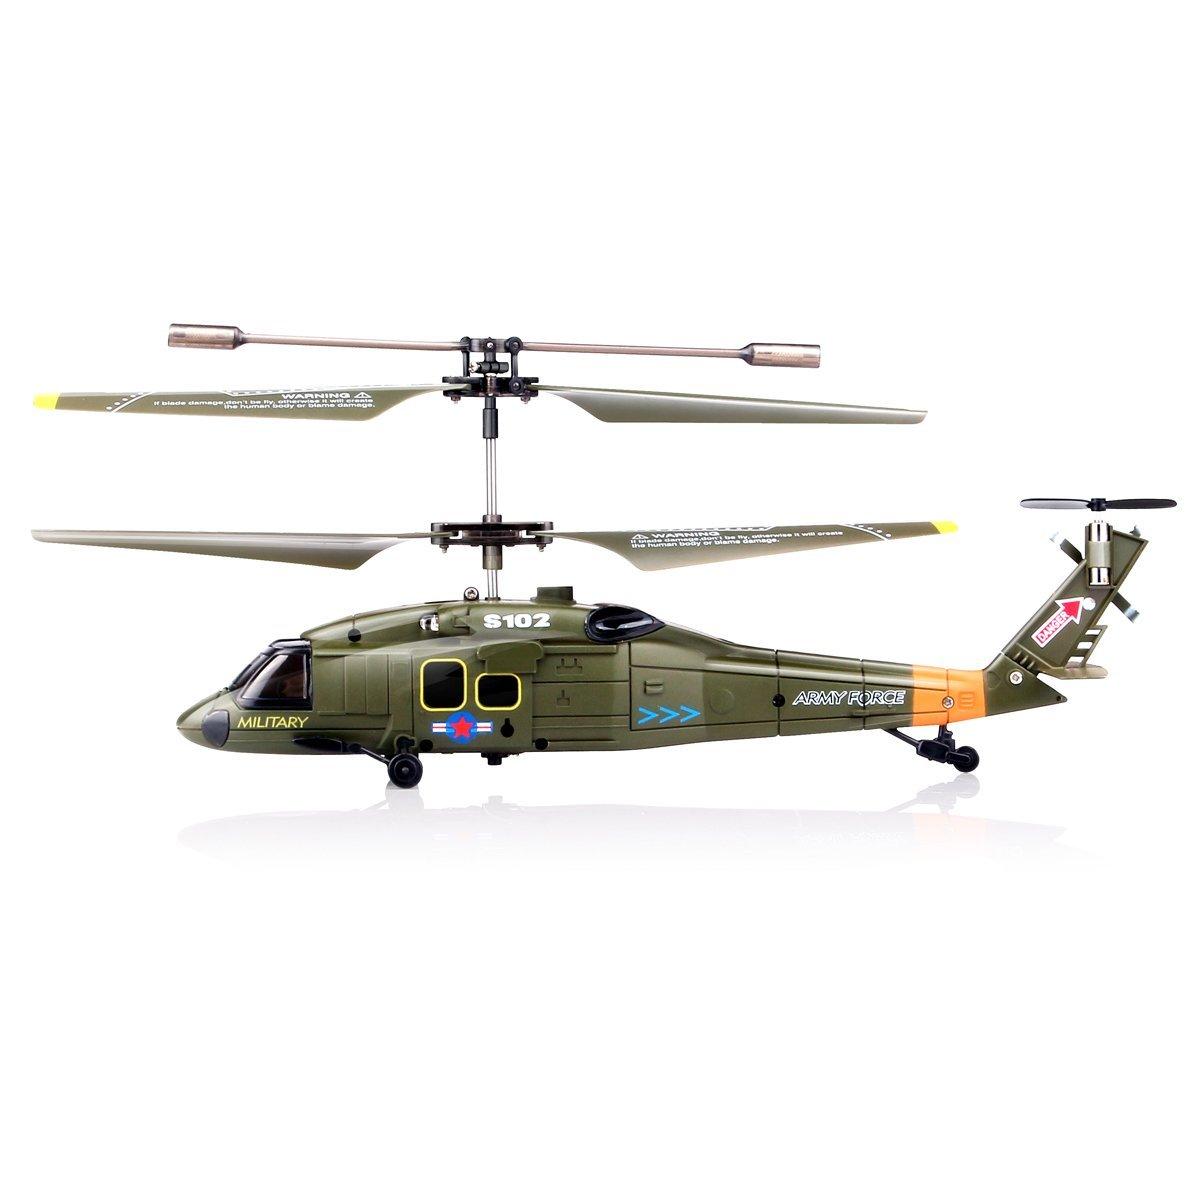 Syma S102G 3-Channel RC Helicopter (Black Hawk UH-60) - Walmart com